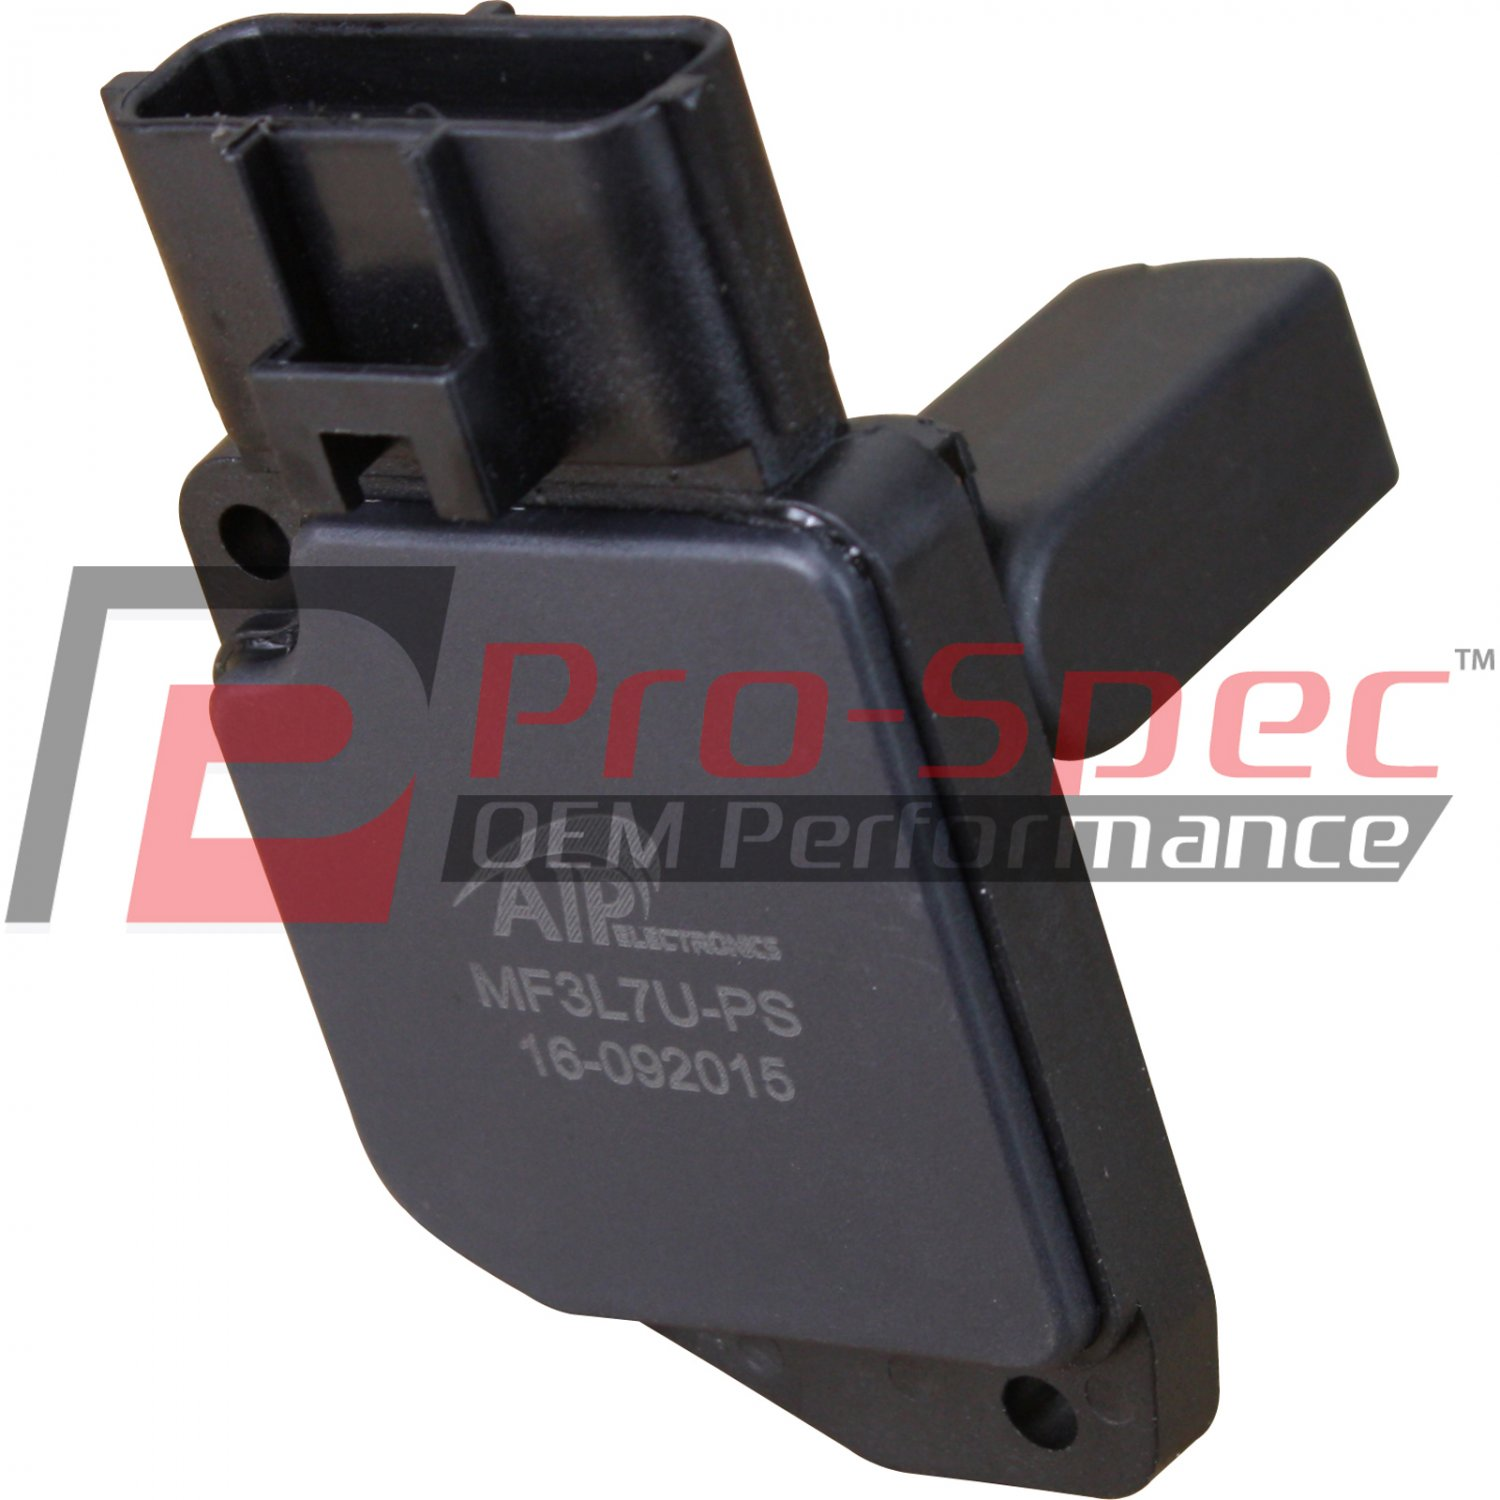 Brand Mass Air Flow Sensor with Housing for 2003-2004 Ford Expedition & Lincoln Navigator Oem Fit MF